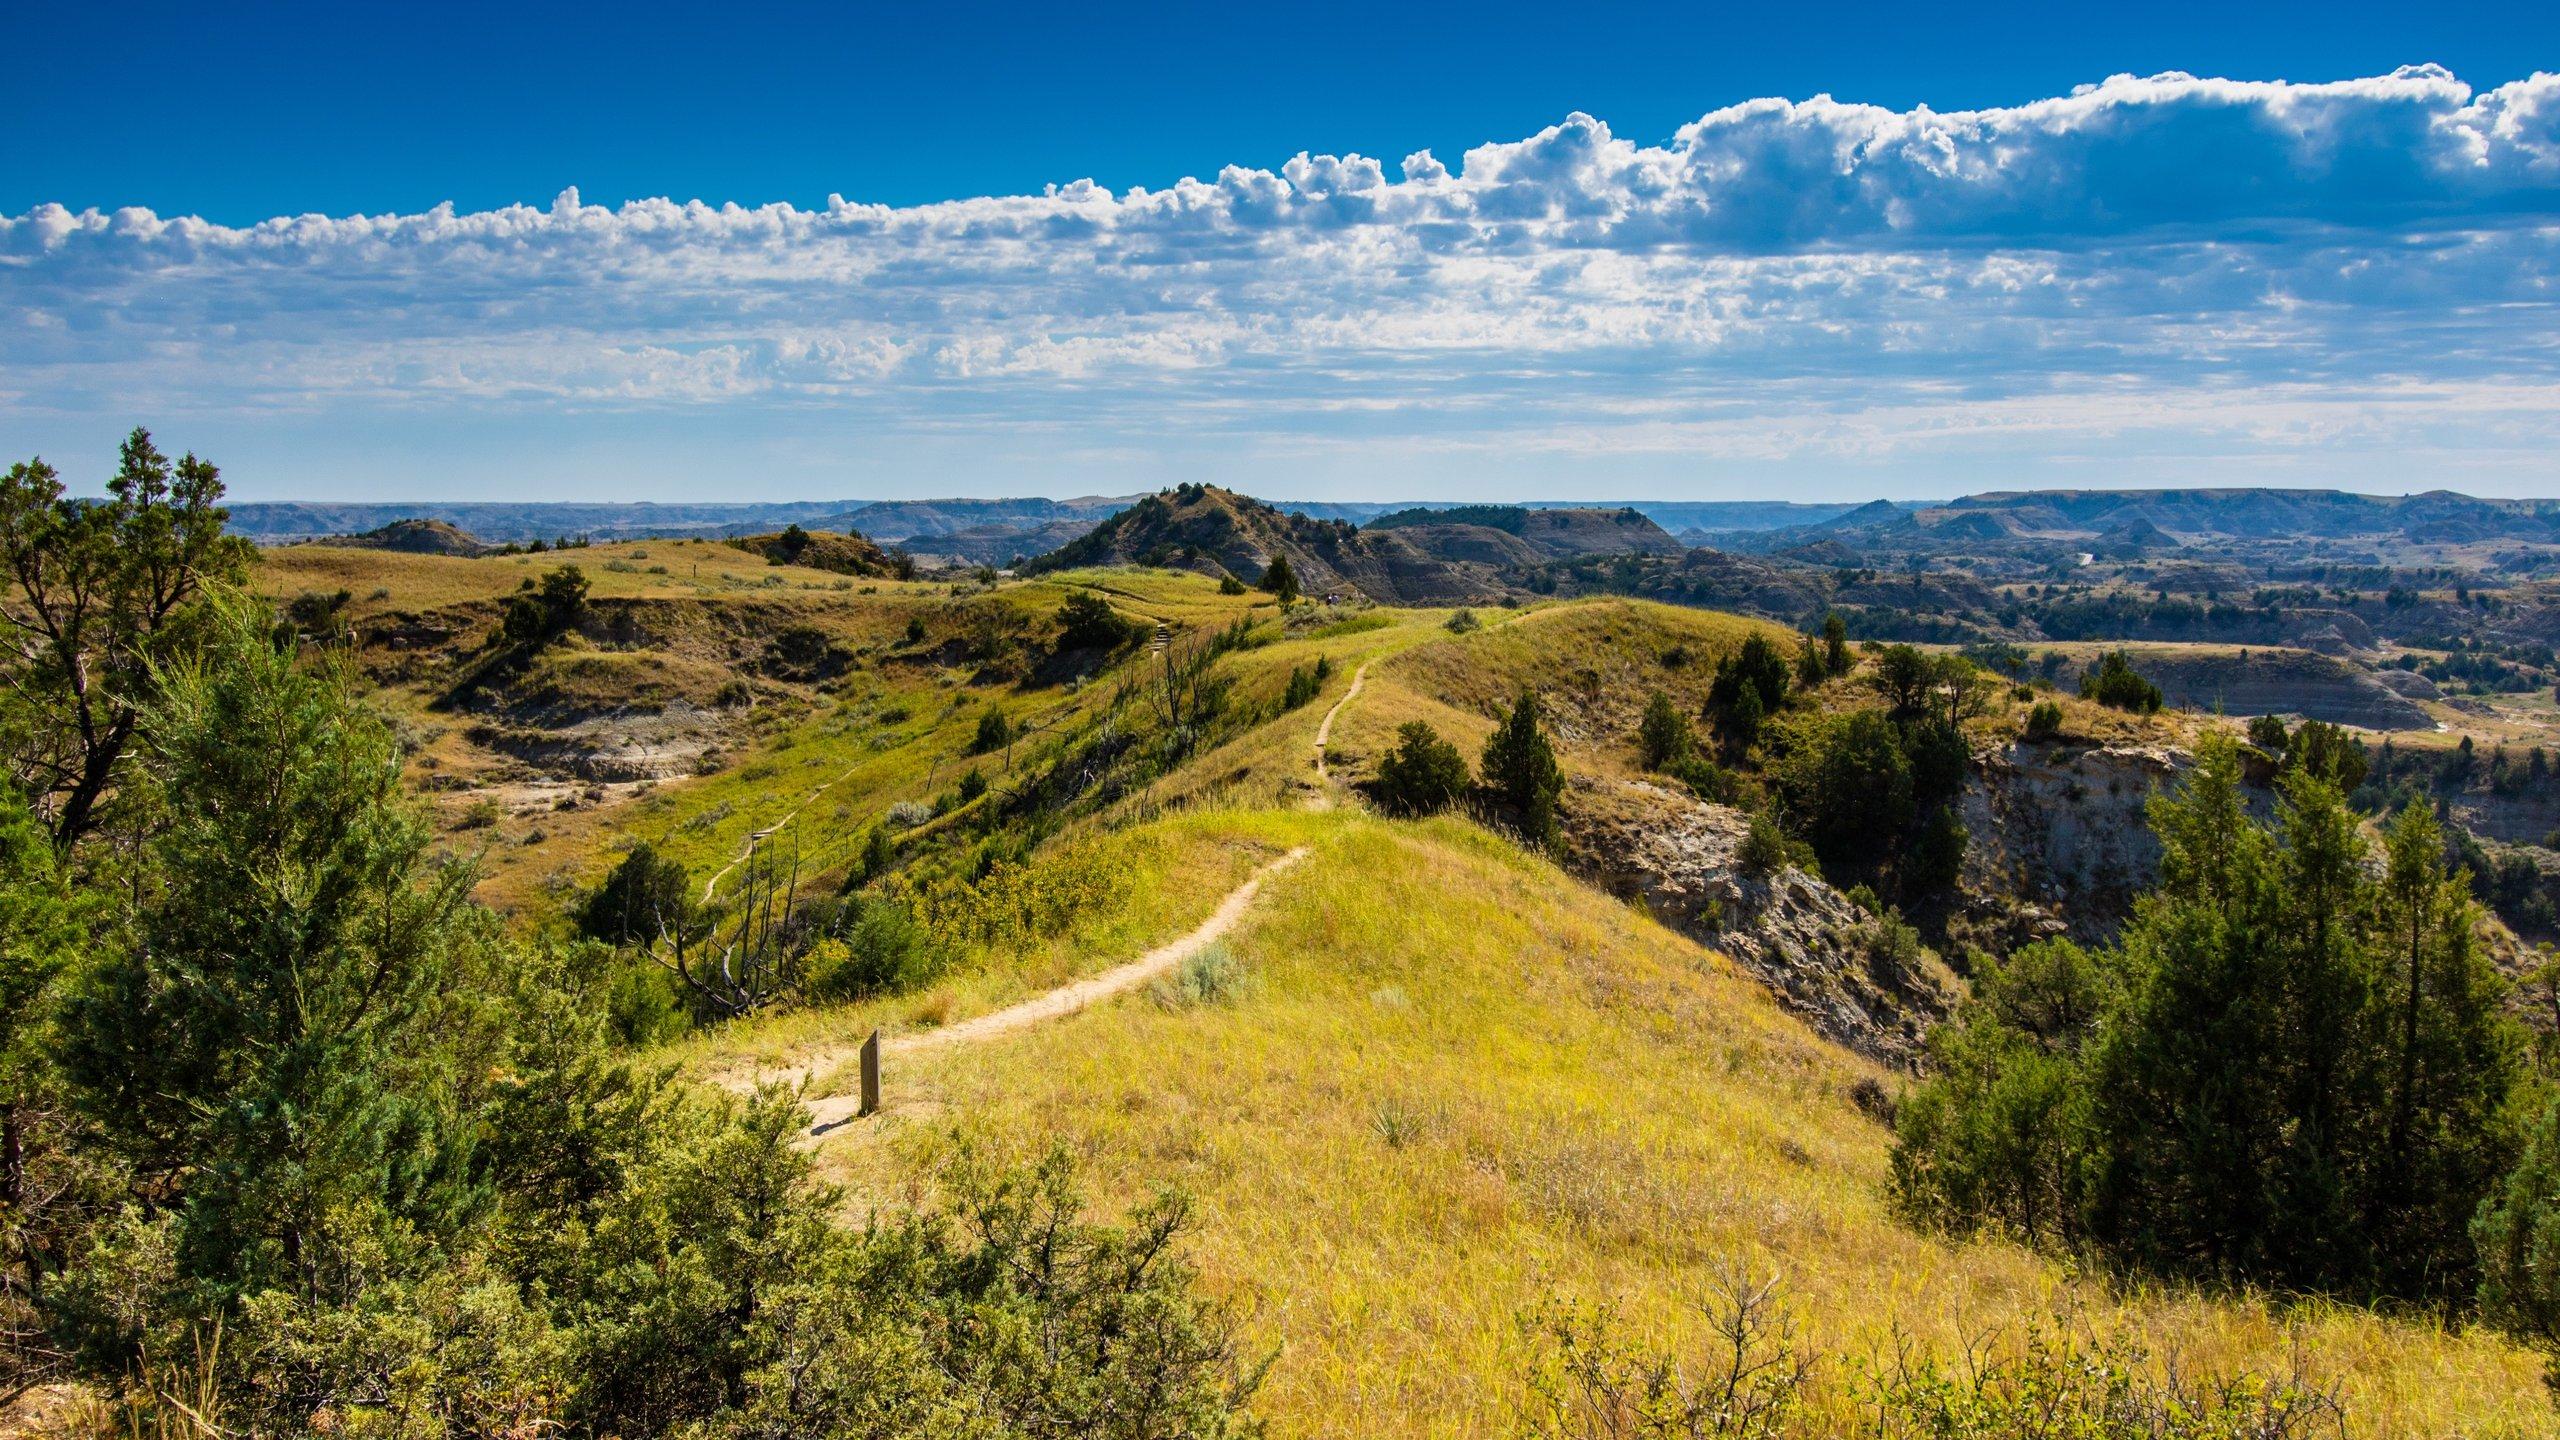 10 Best Hotels Closest to Theodore Roosevelt National Park in 2560x1440